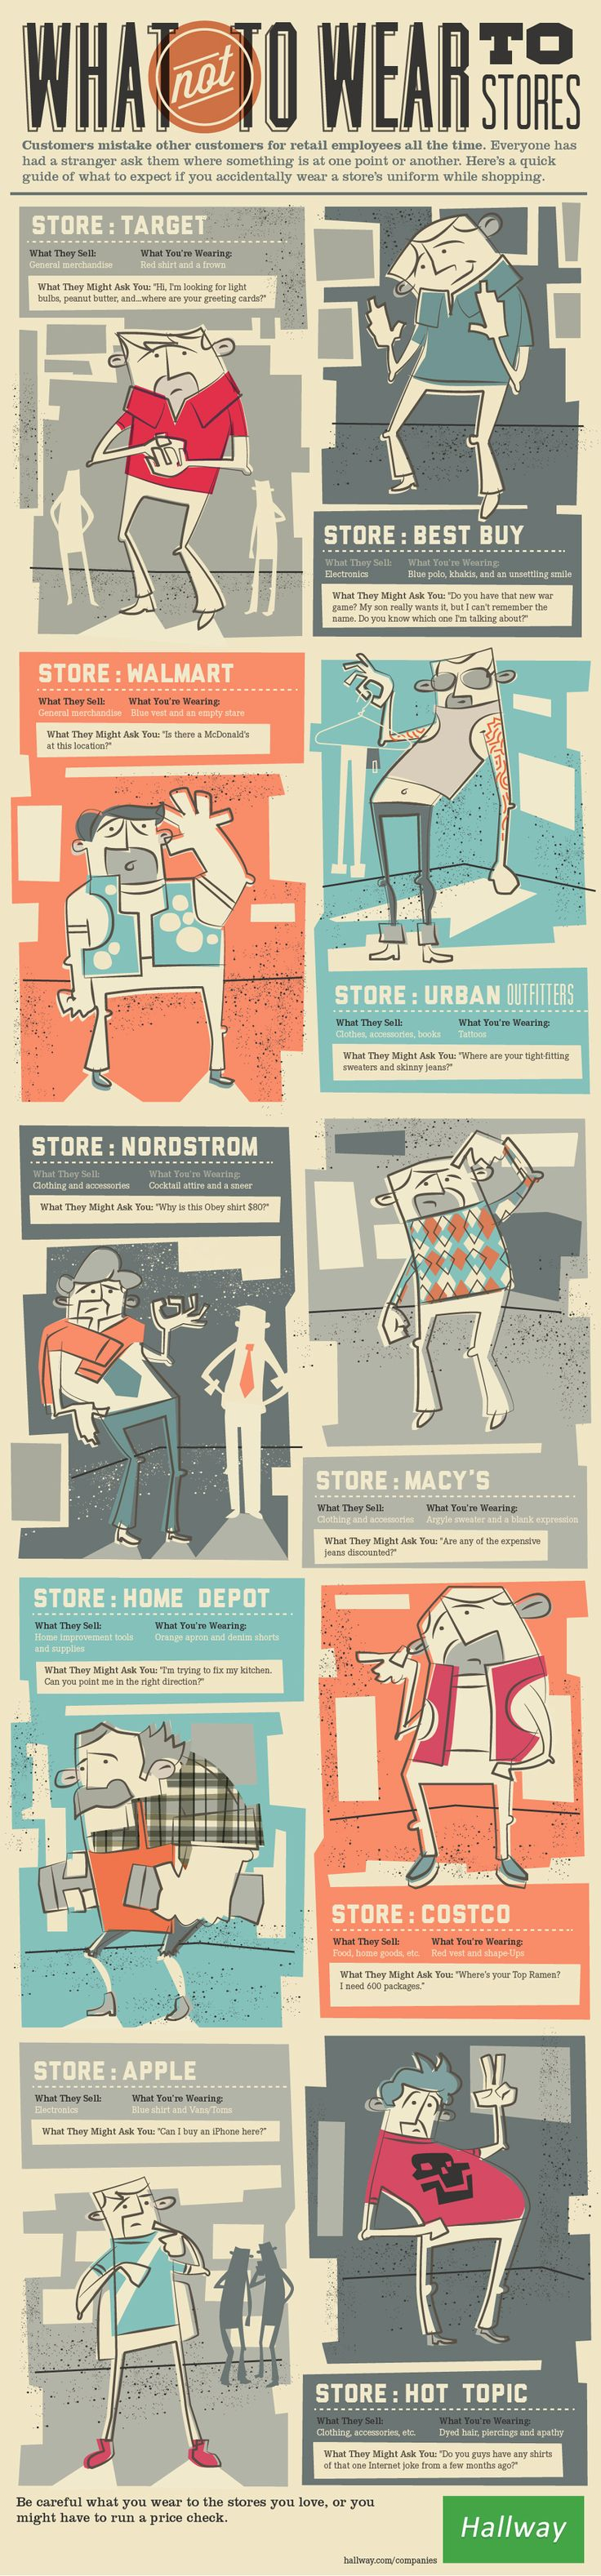 What Not to Wear to StoresHallways, Illustration, Columns, Graphics Design, Bulbs, Retail Stores, Wear, Infographic Design, Dresses Codes